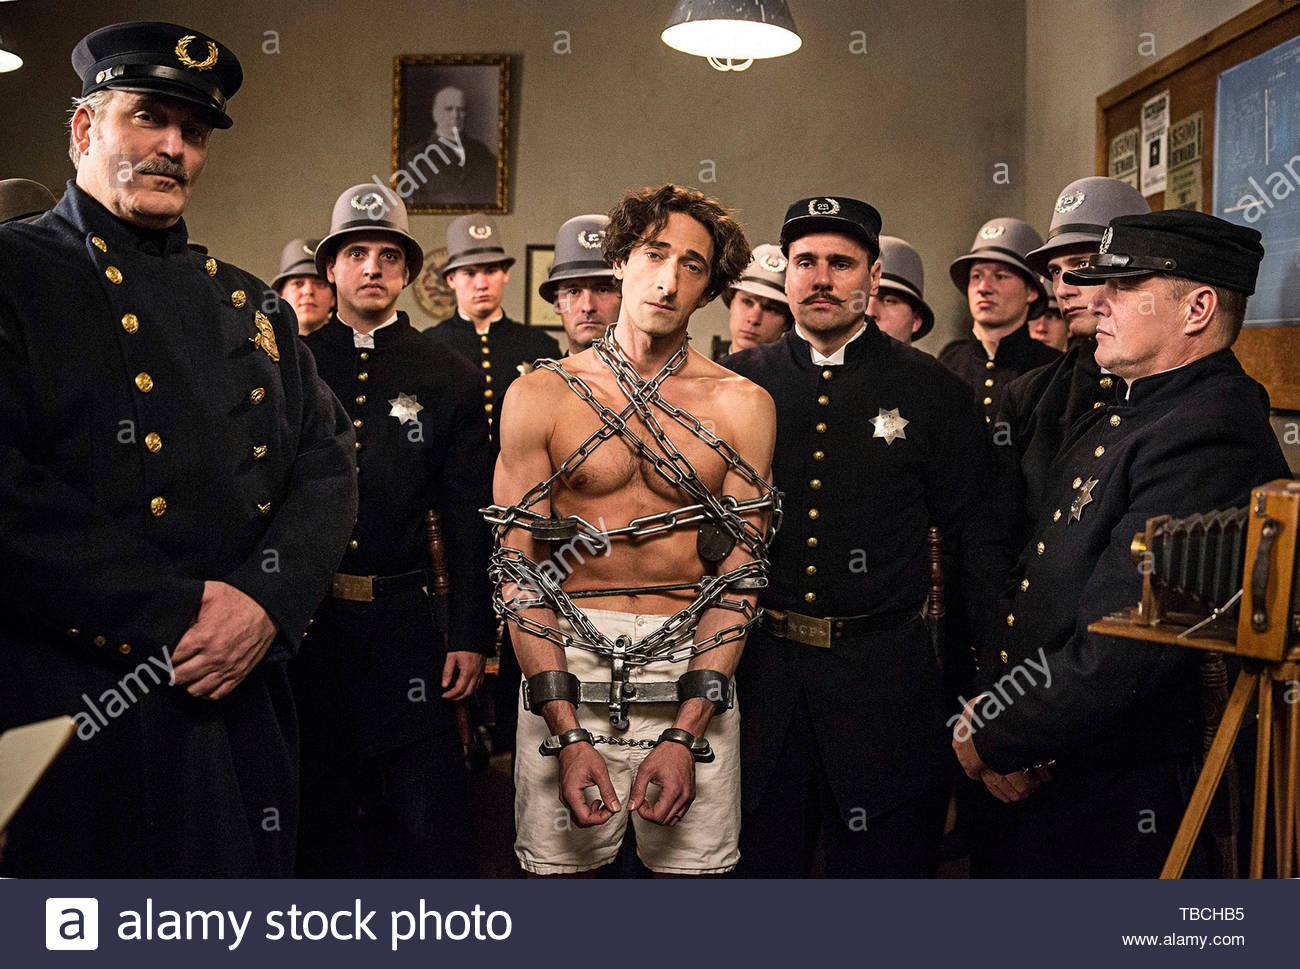 ADRIEN BRODY in HOUDINI (2014). Copyright: Editorial inside use only. This is a publicly distributed handout. Access rights only, no license of copyright provided. Mandatory authorization to Visual Icon (www.visual-icon.com) is required for the reproduction of this image. Credit: LIONSGATE TELEVISION / Album - Stock Image